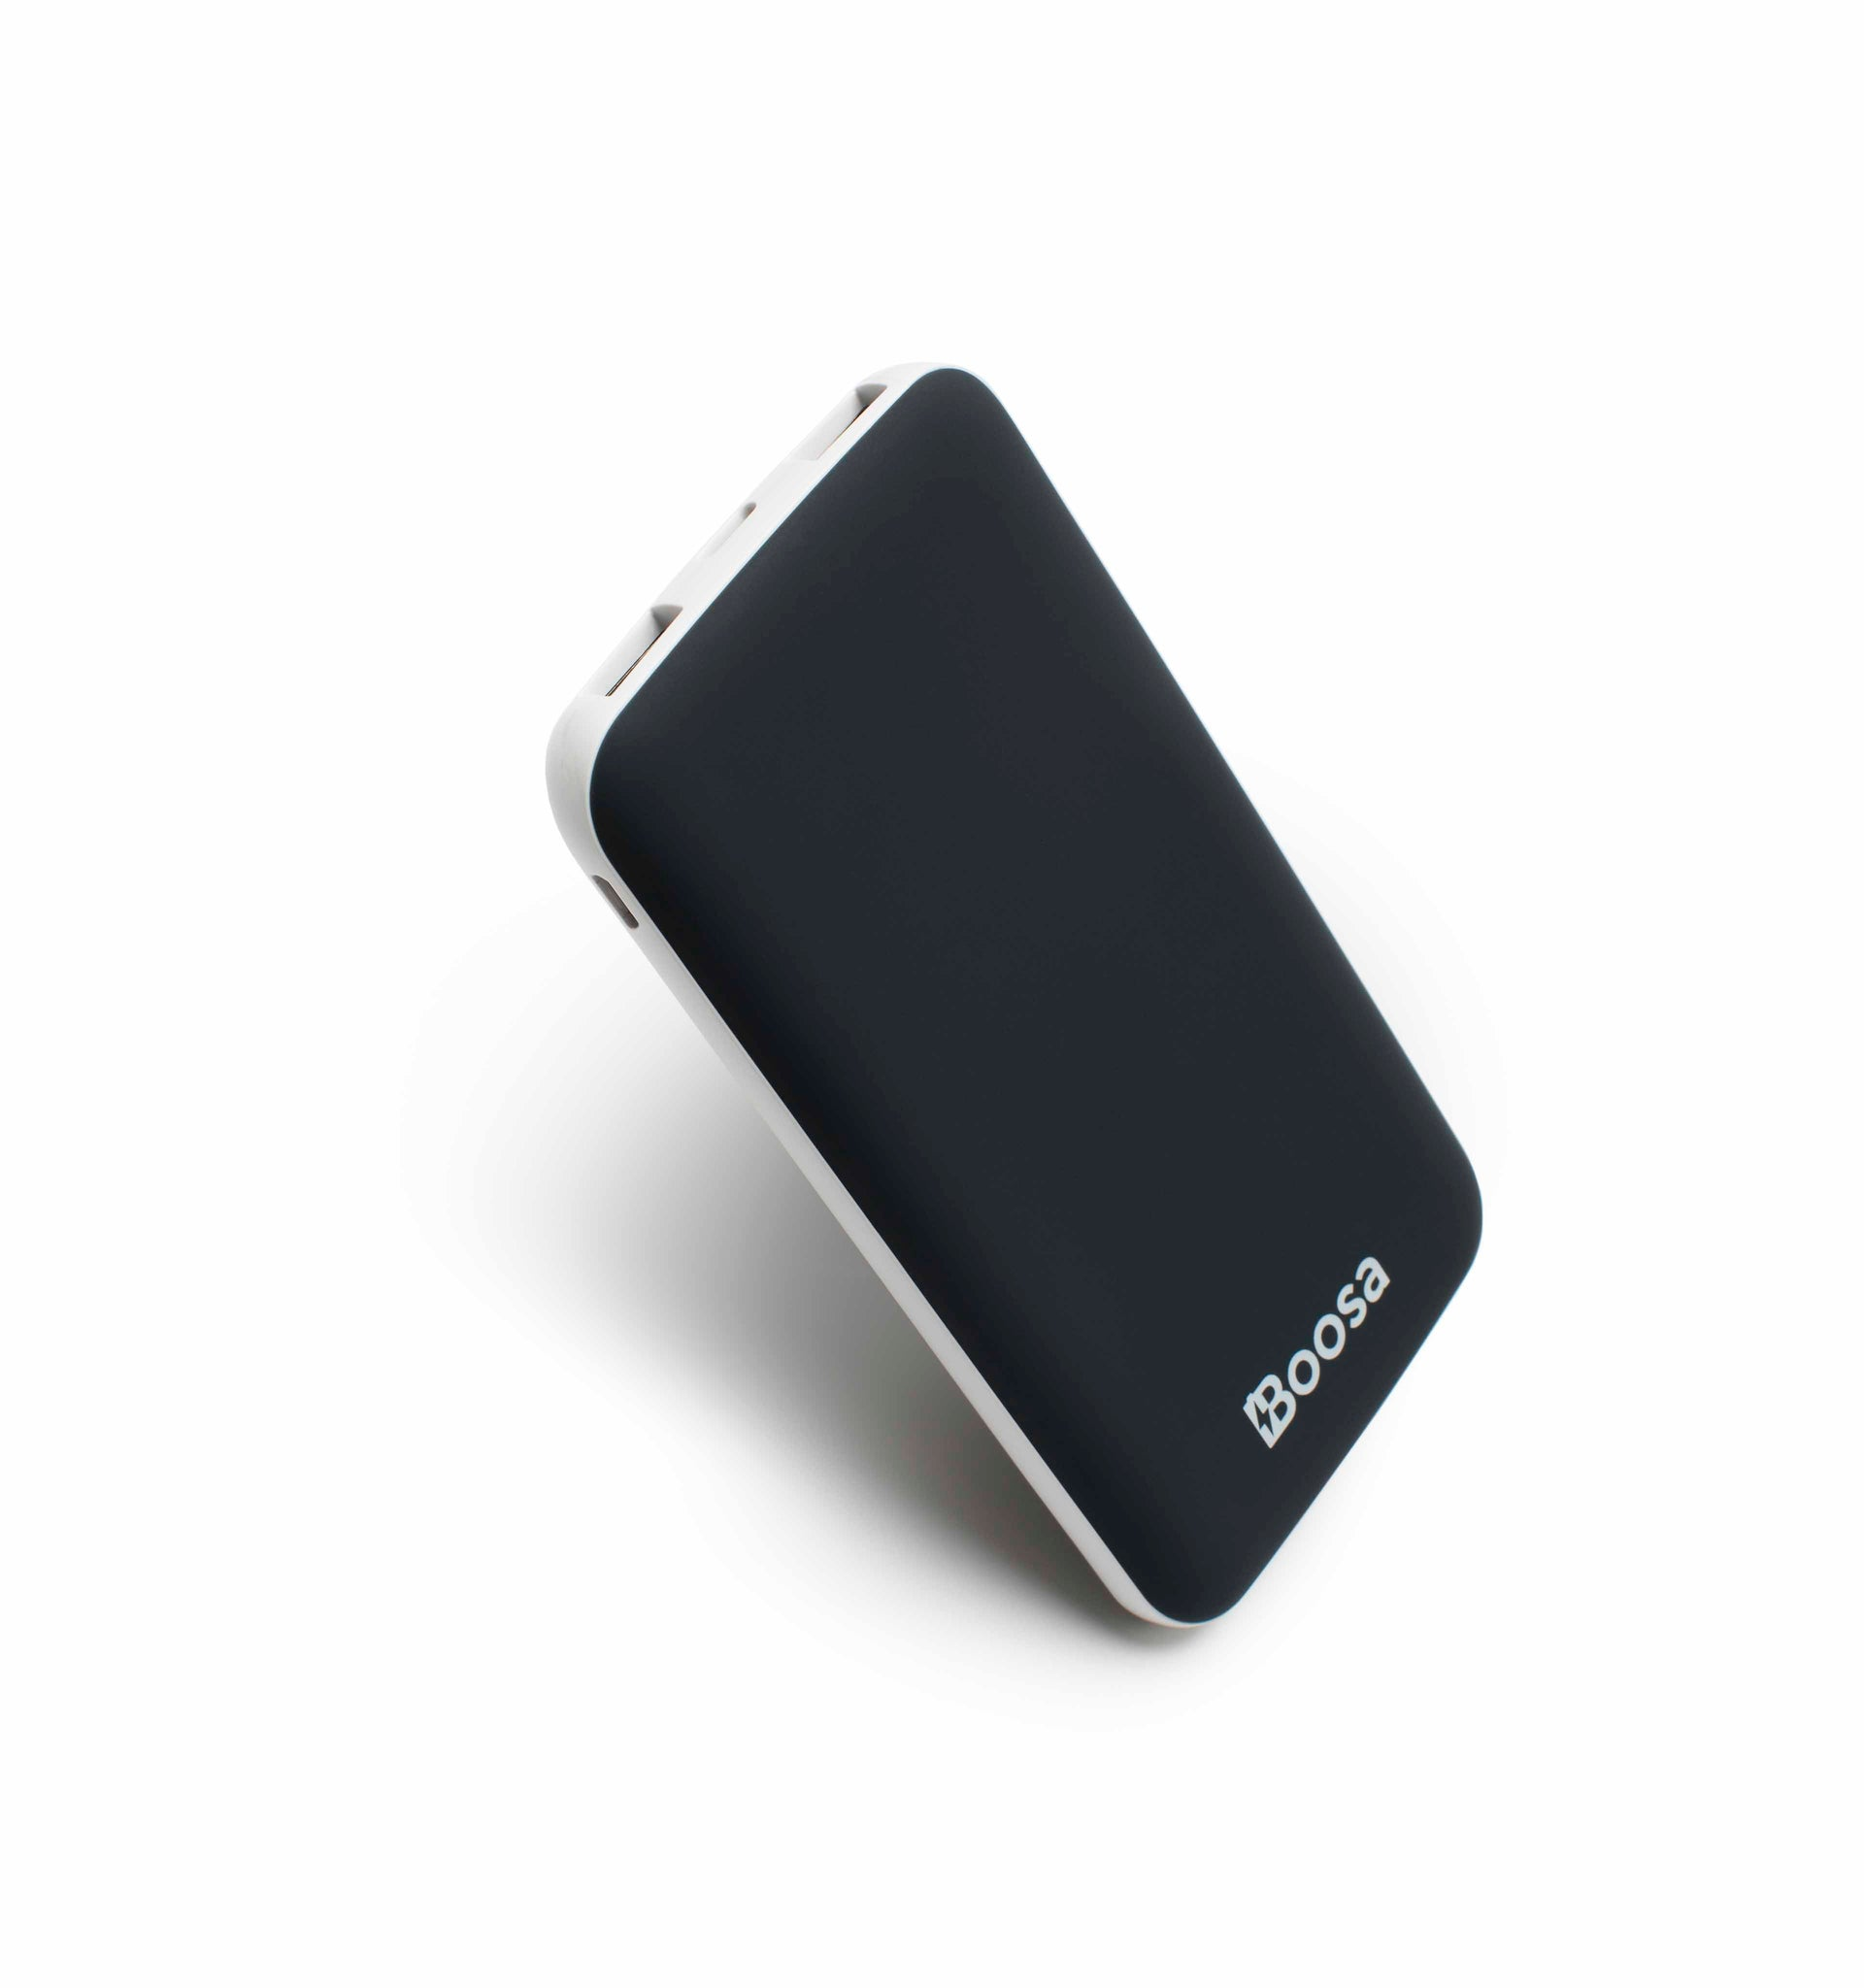 Boosa Macro M1 Power Bank